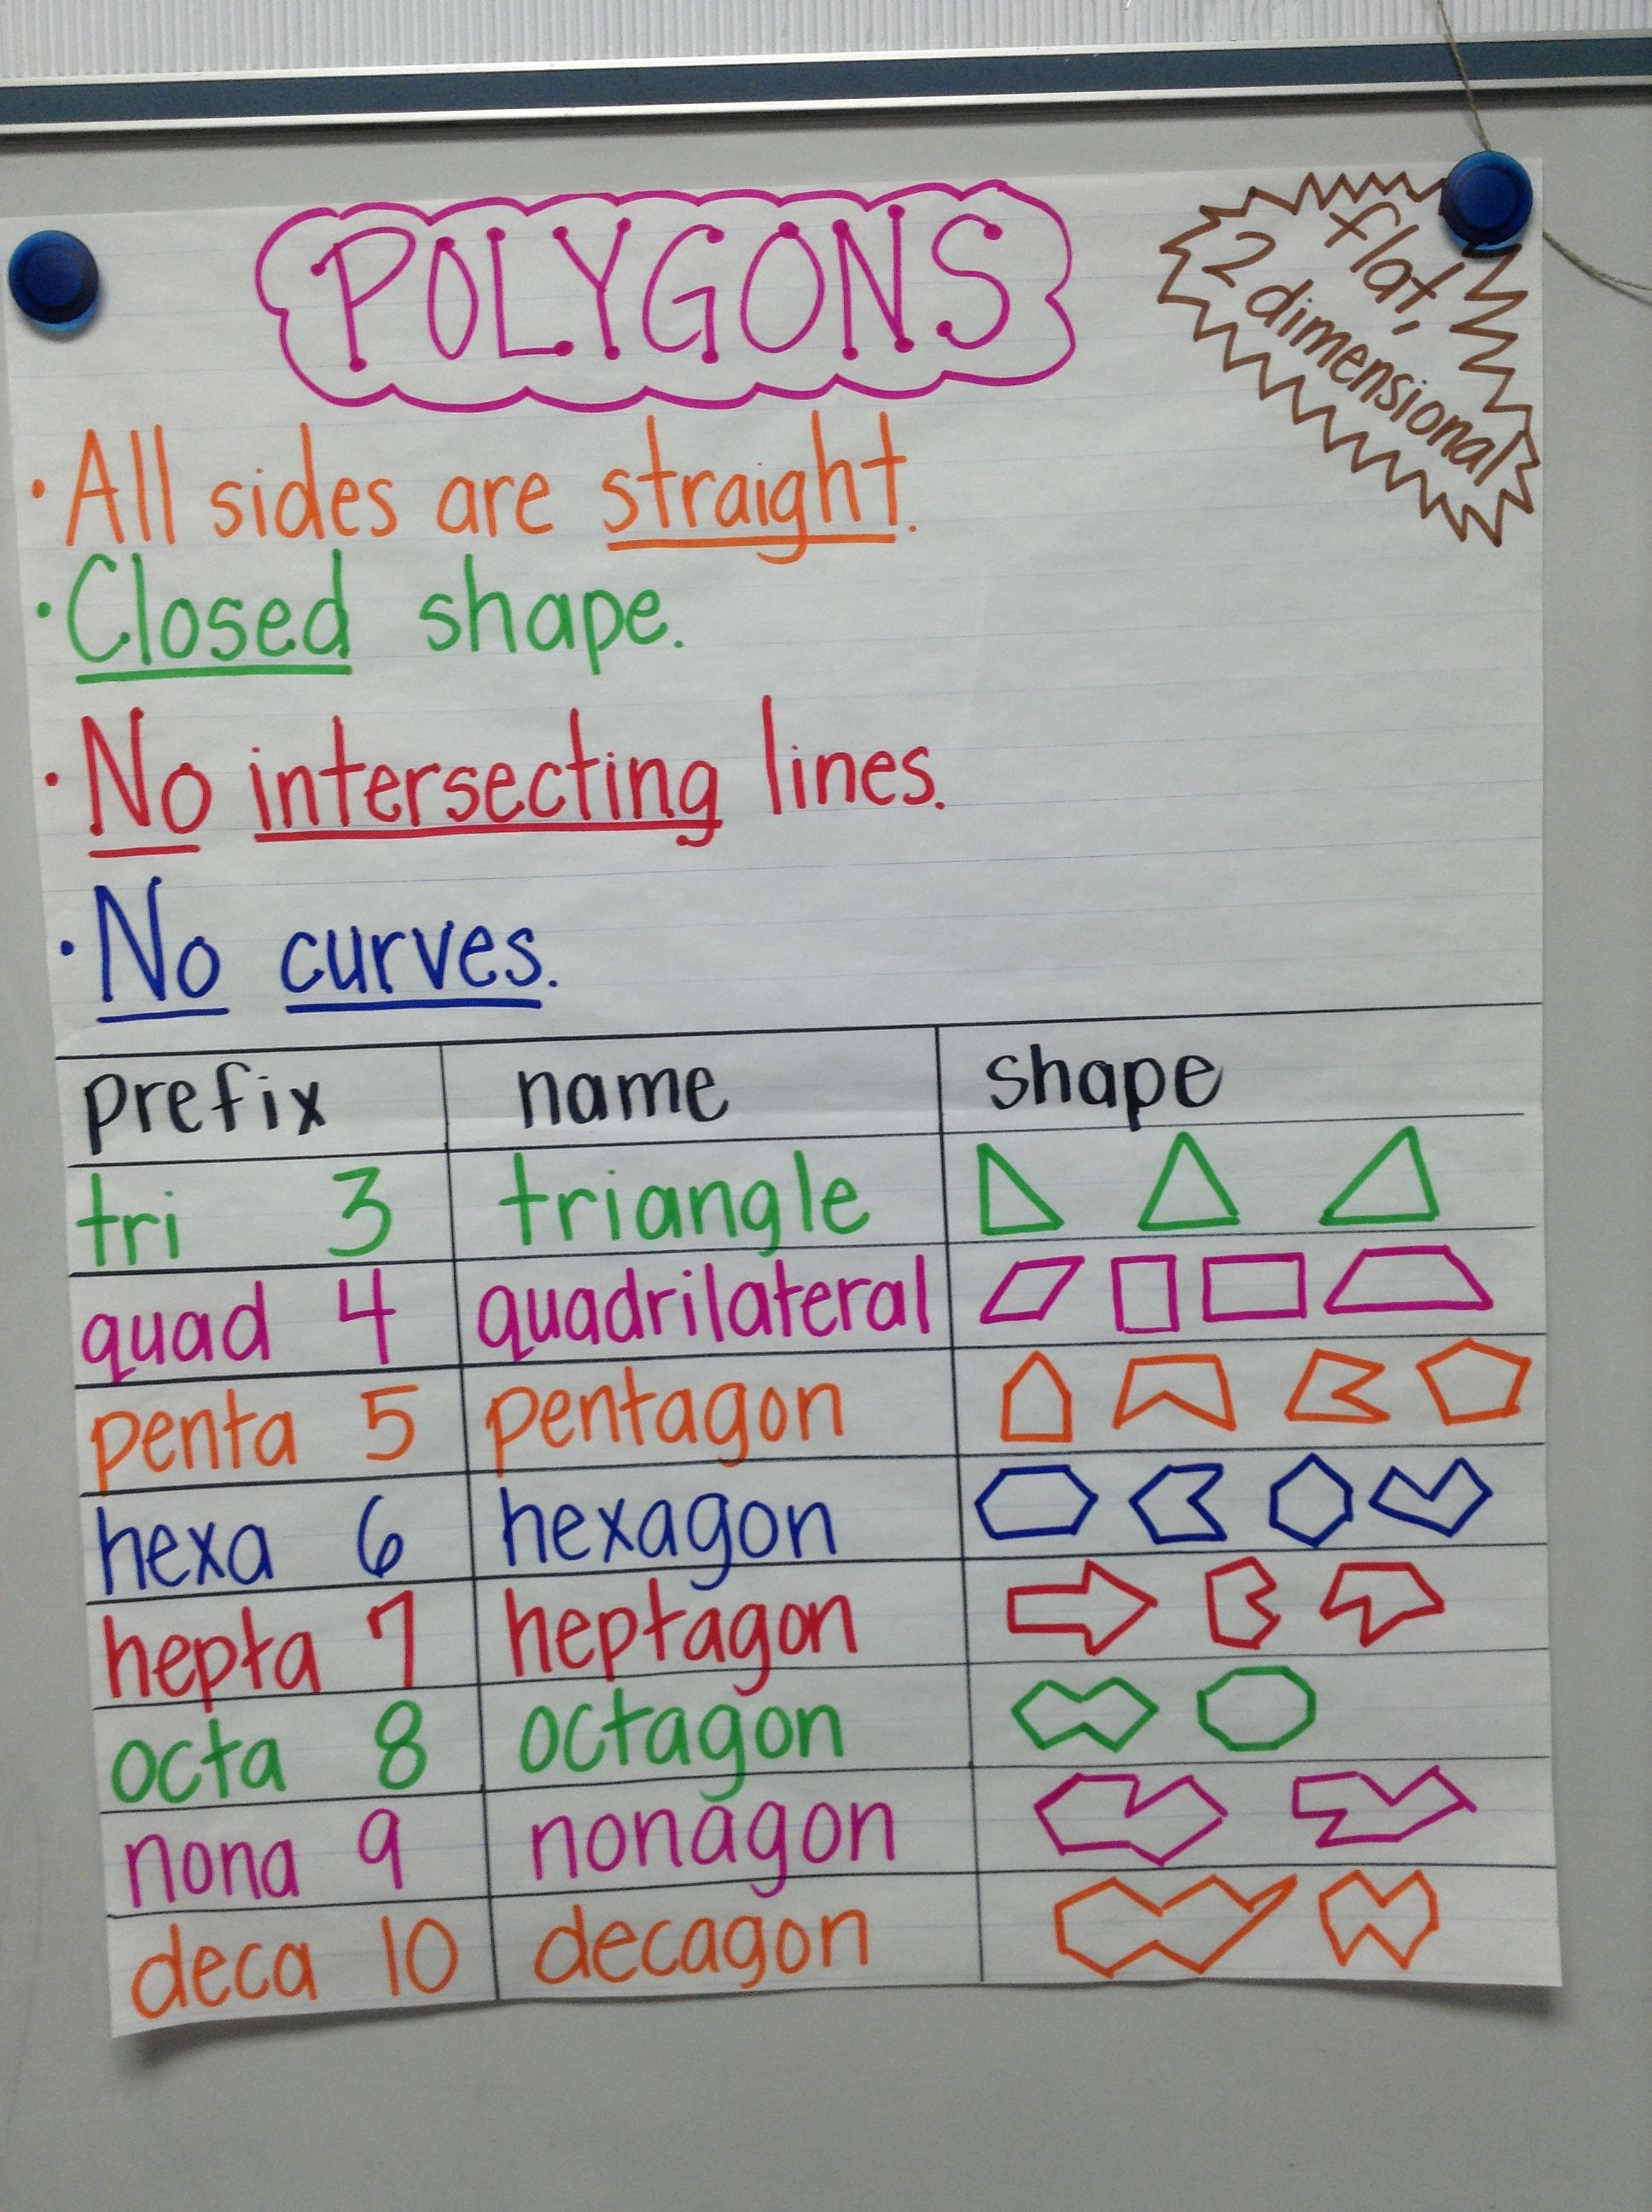 Polygon anchor chart : School : Pinterest : Lu00e6ring og Plakater